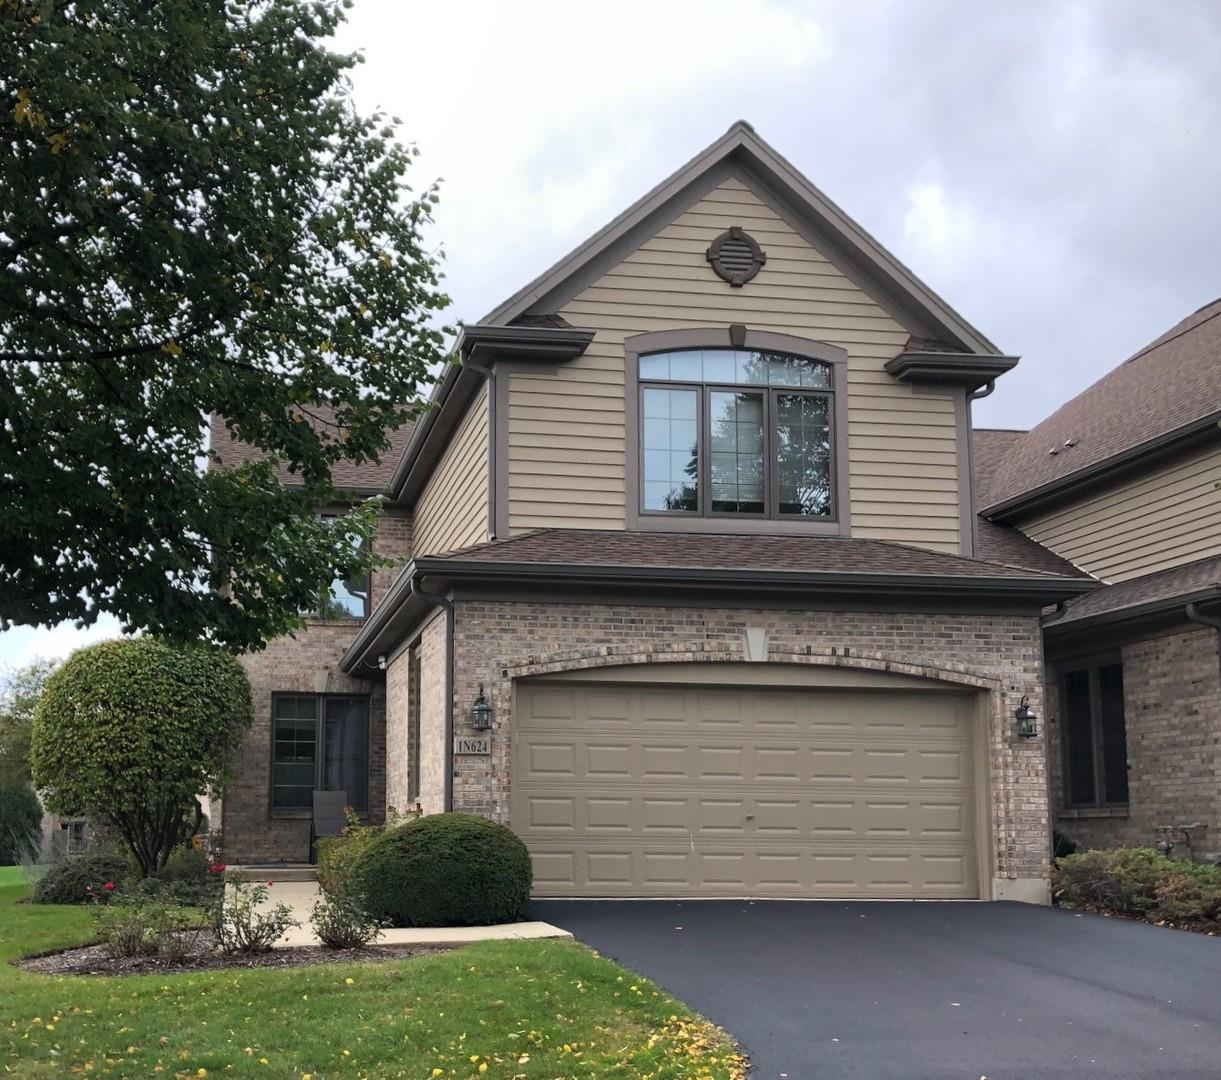 1N624 AUGUSTA Court, Winfield, IL 60190 - #: 10945128